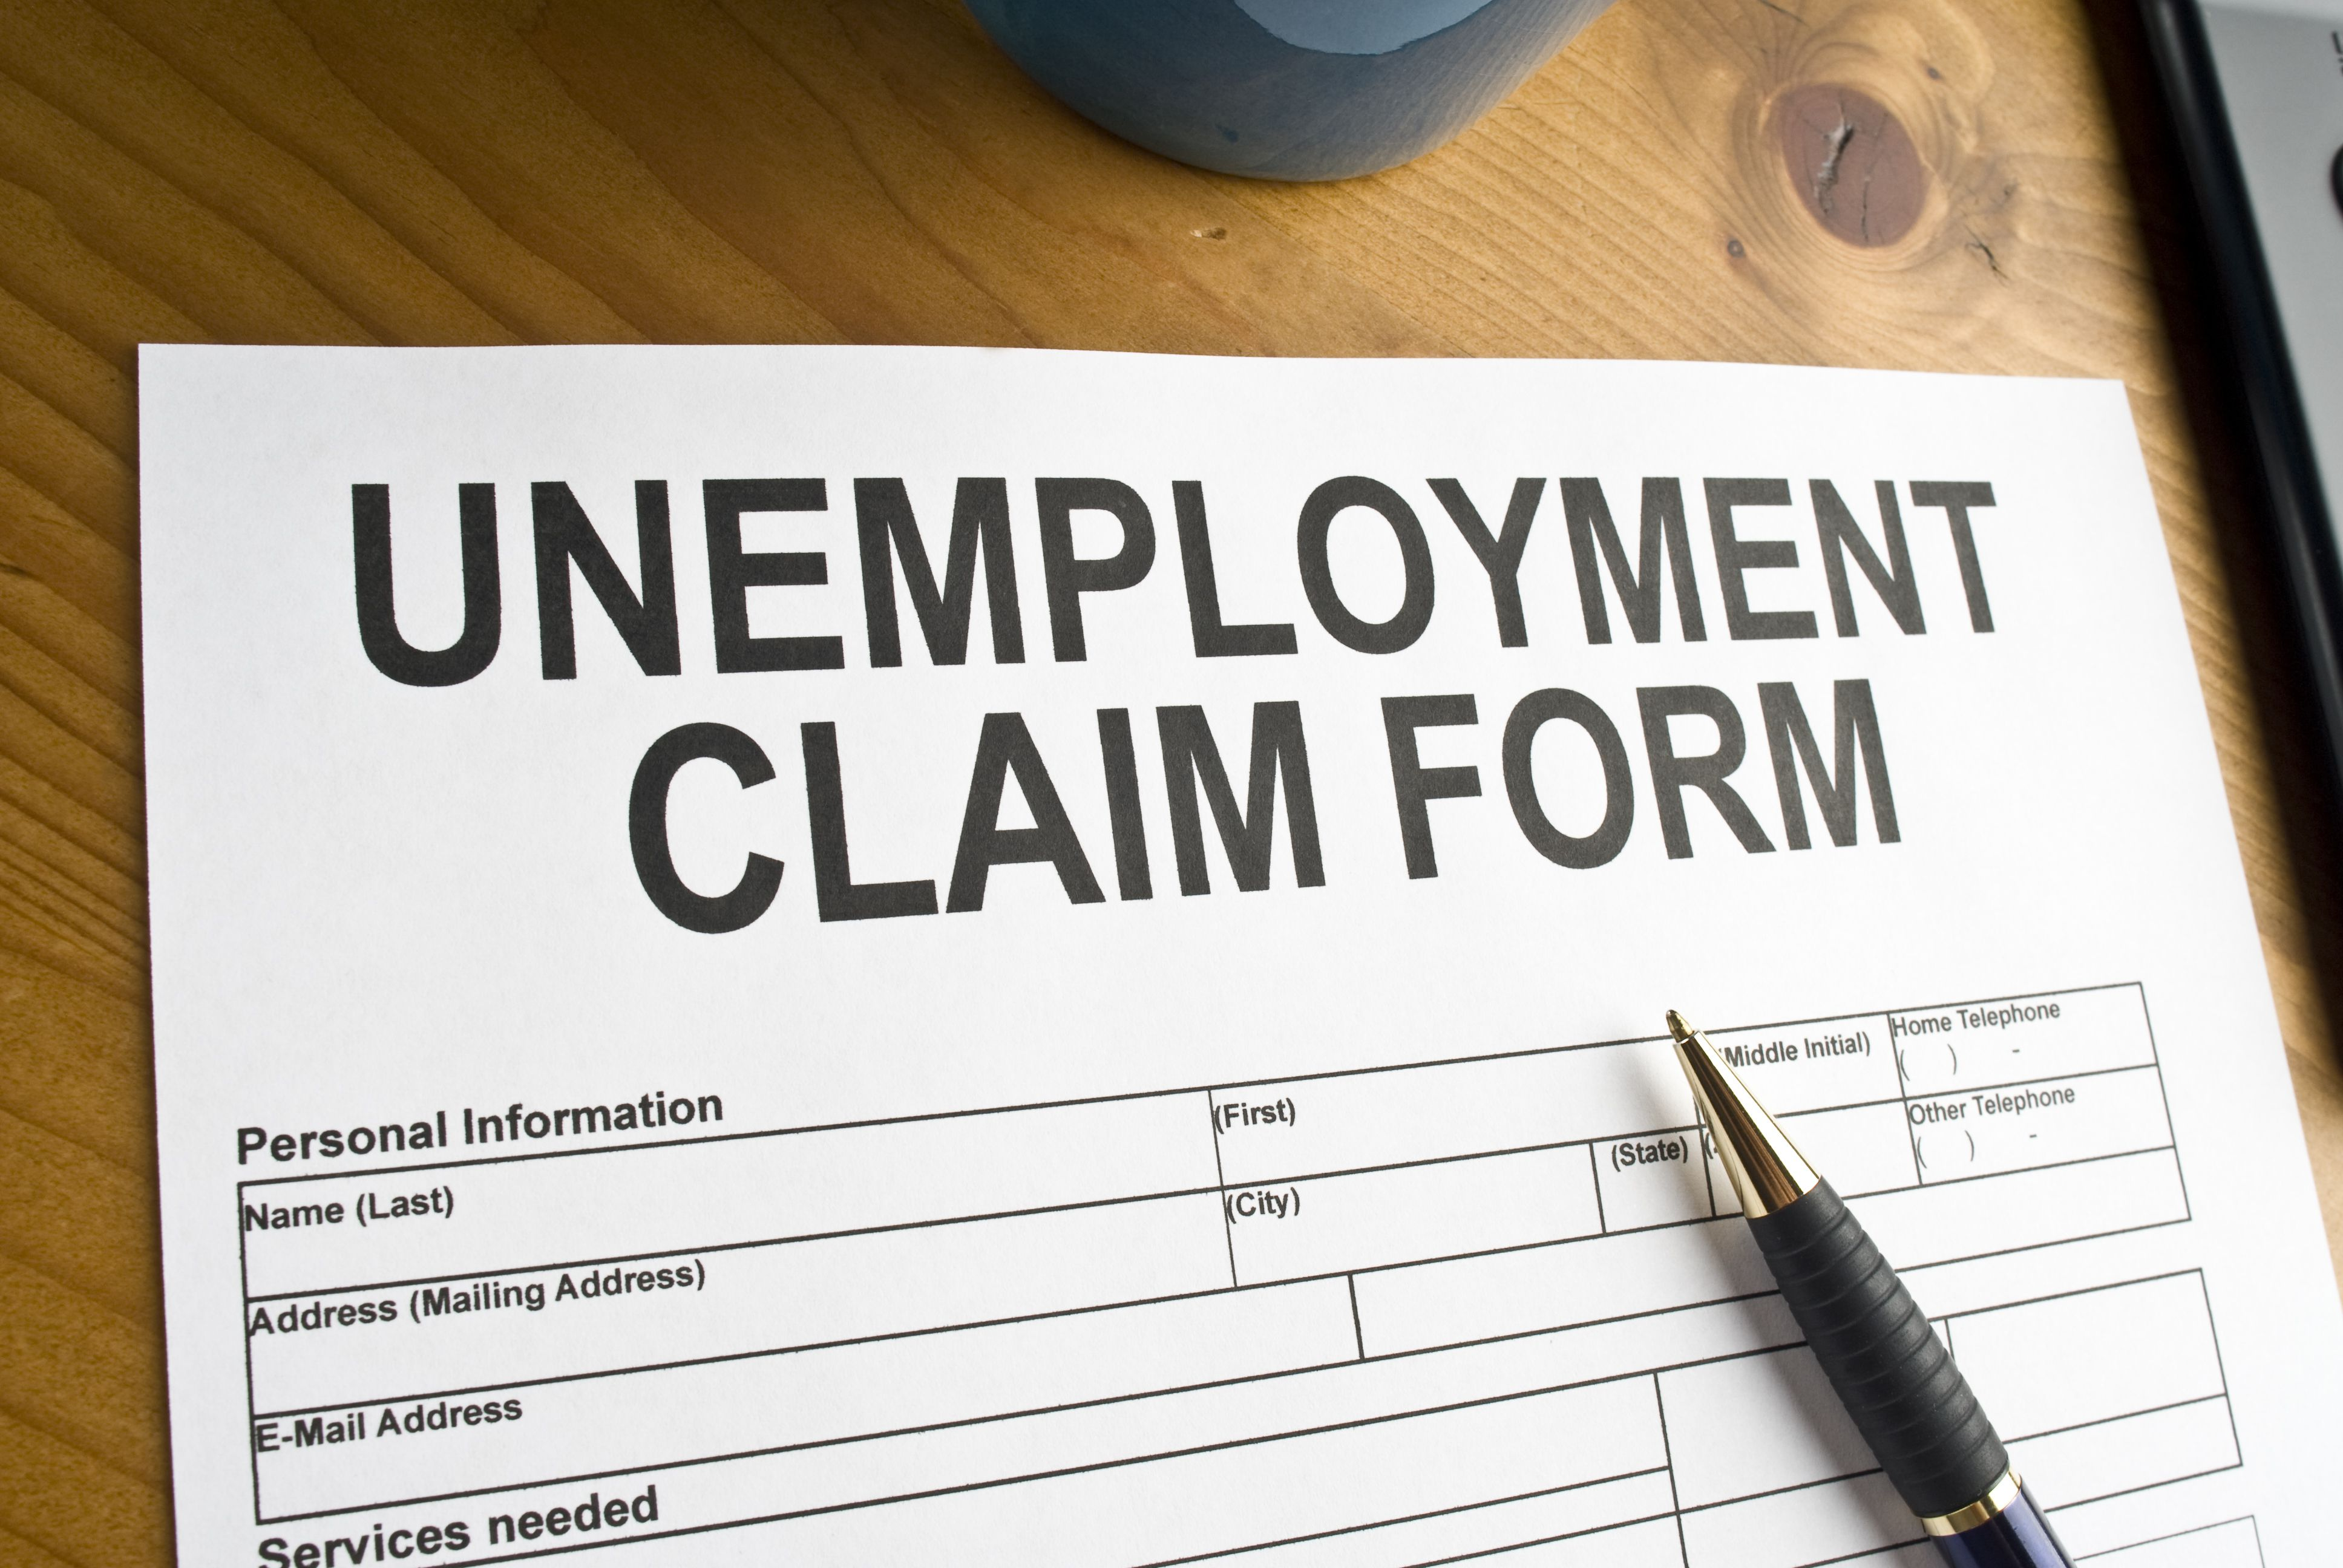 form-940-and-unemployment-update